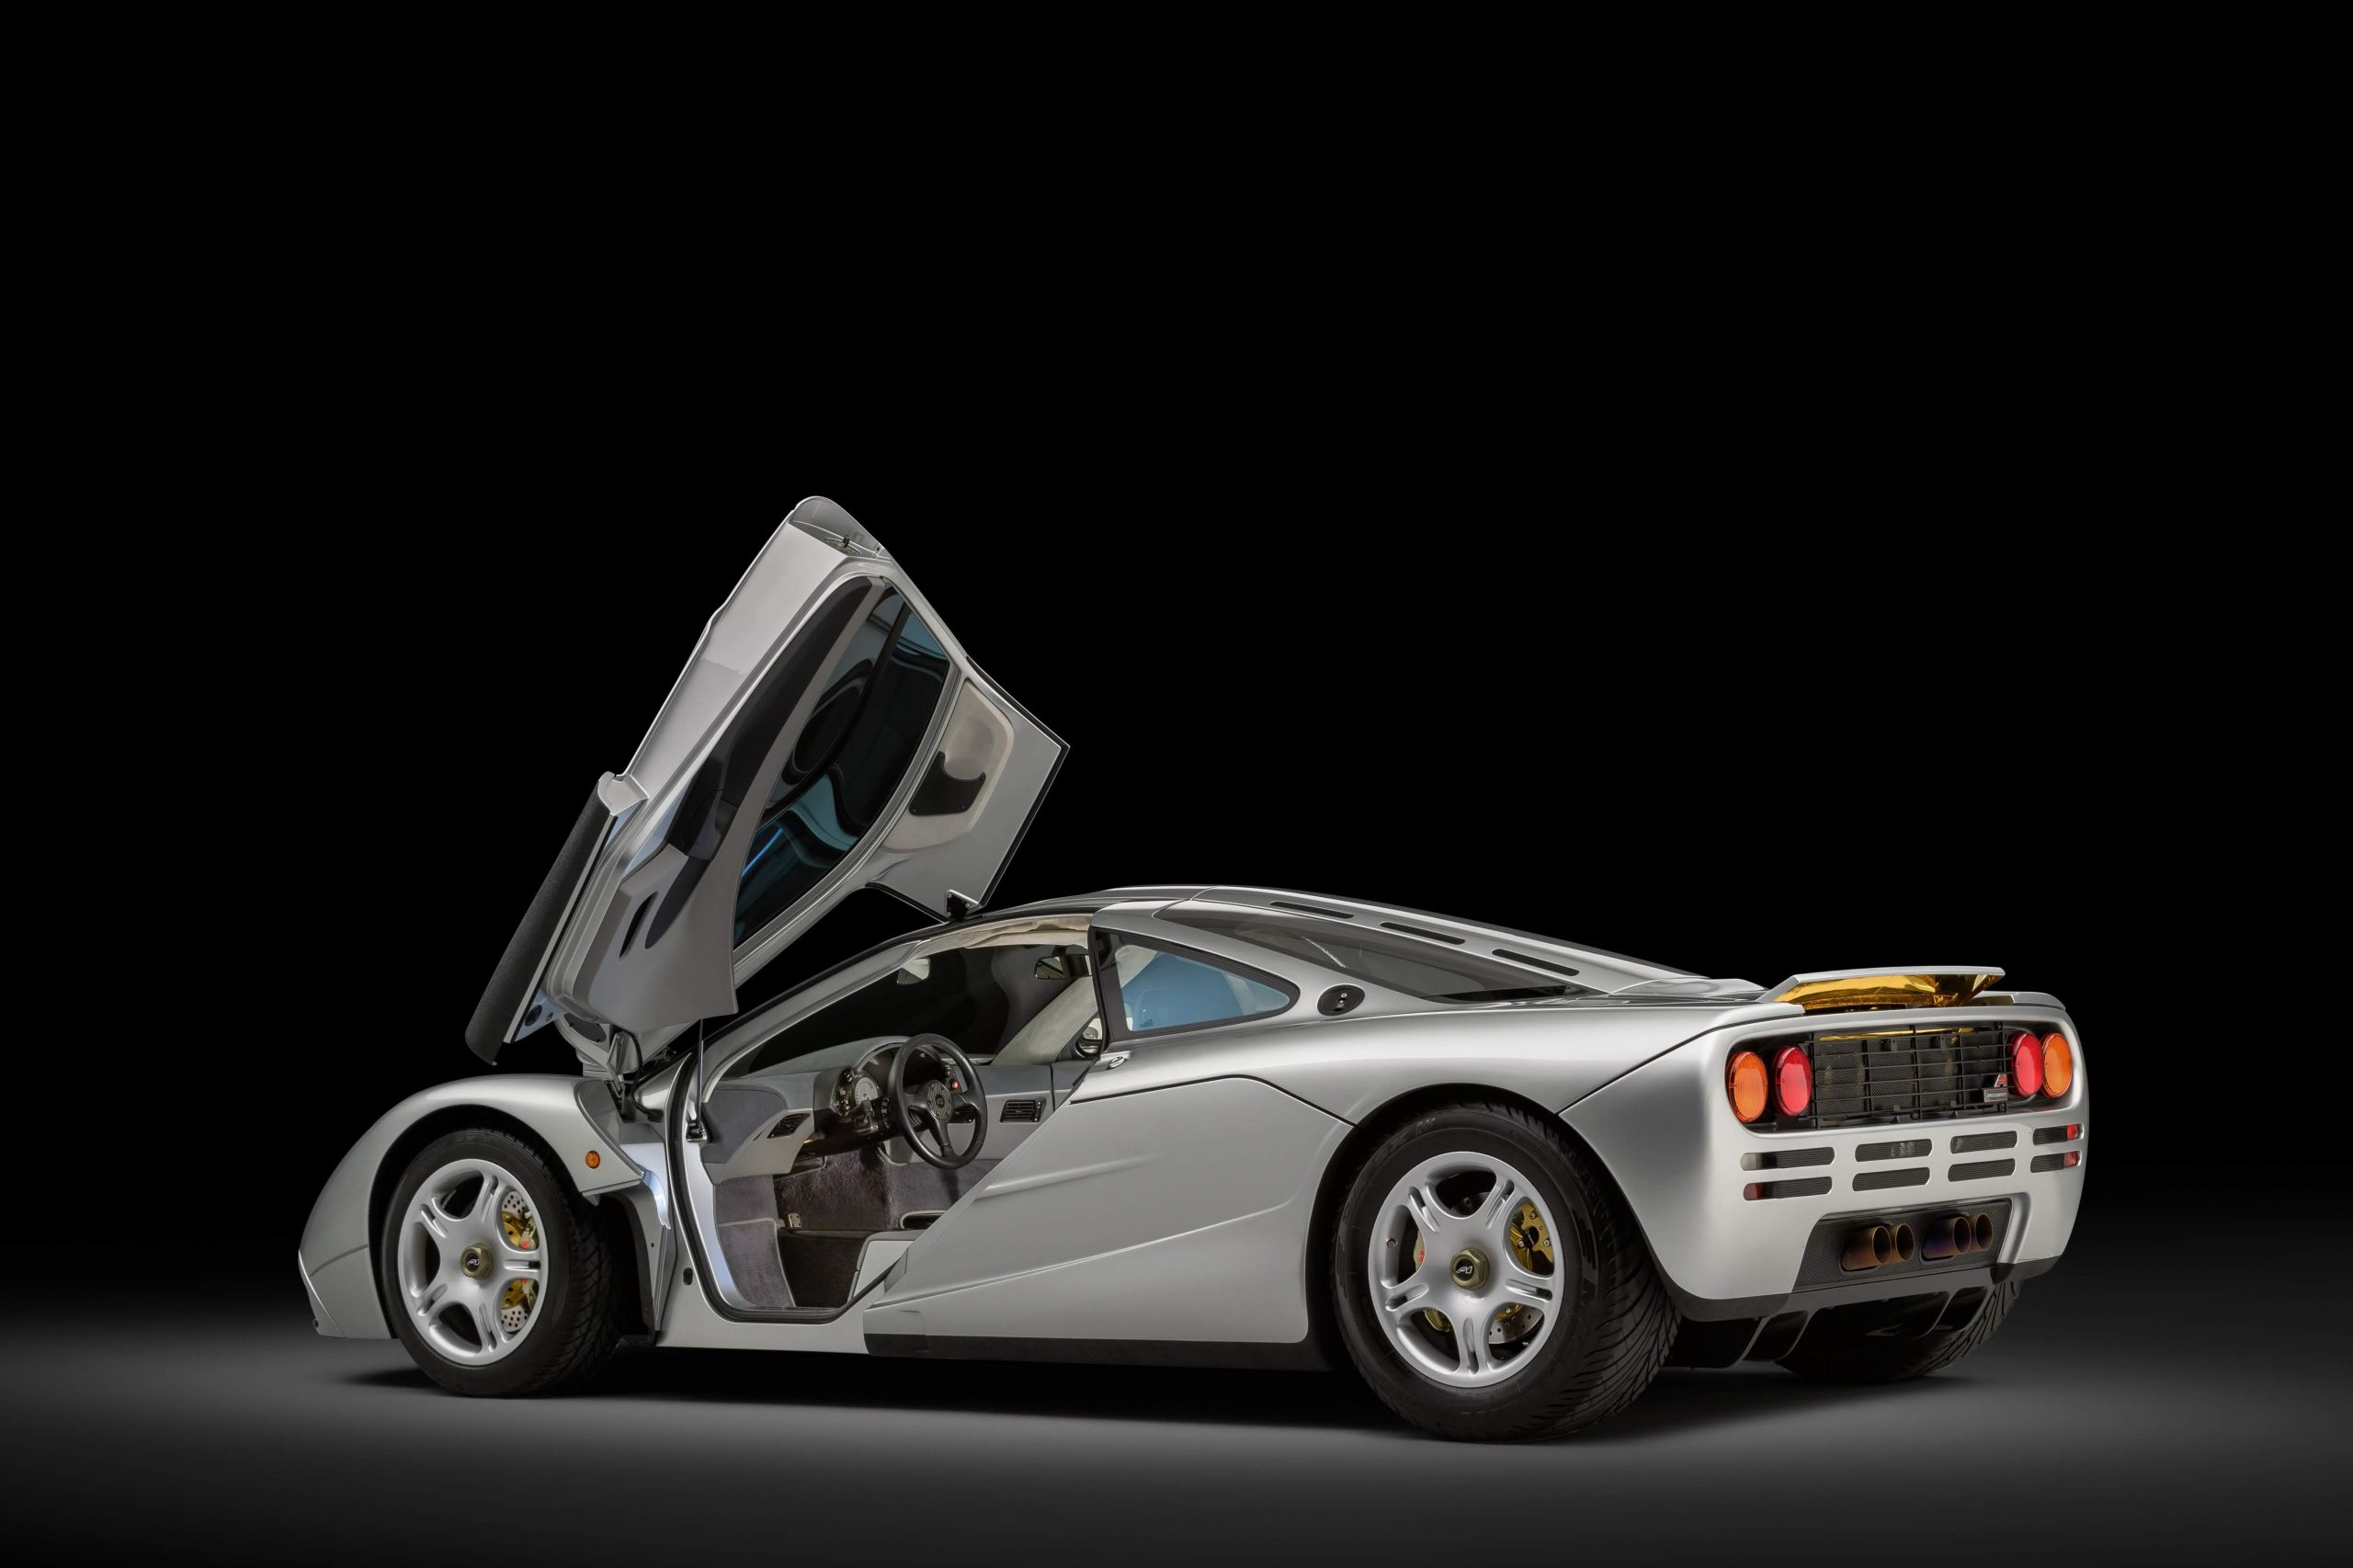 McLaren F1 Rear Three-Quarter Door Raised